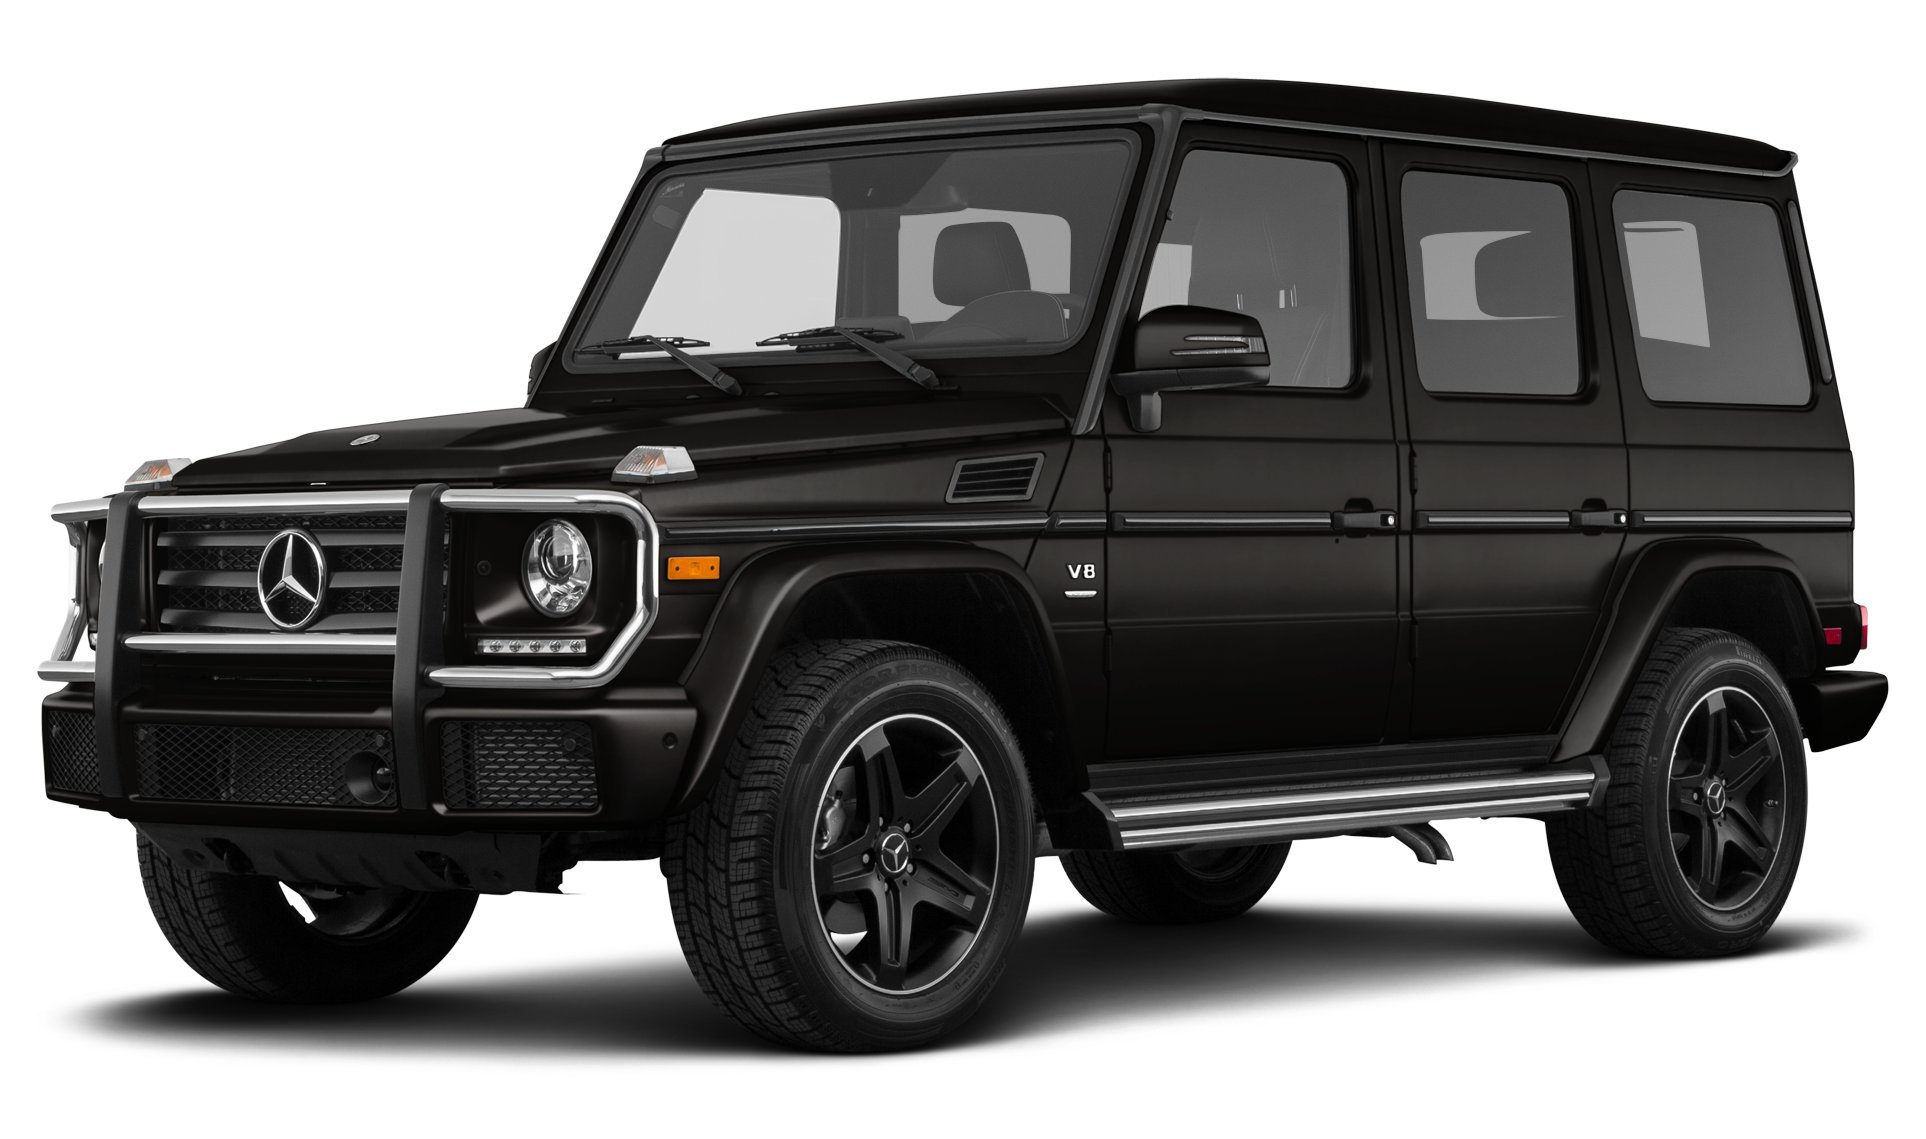 2018 mercedes benz g550 4x4 reviews images. Black Bedroom Furniture Sets. Home Design Ideas